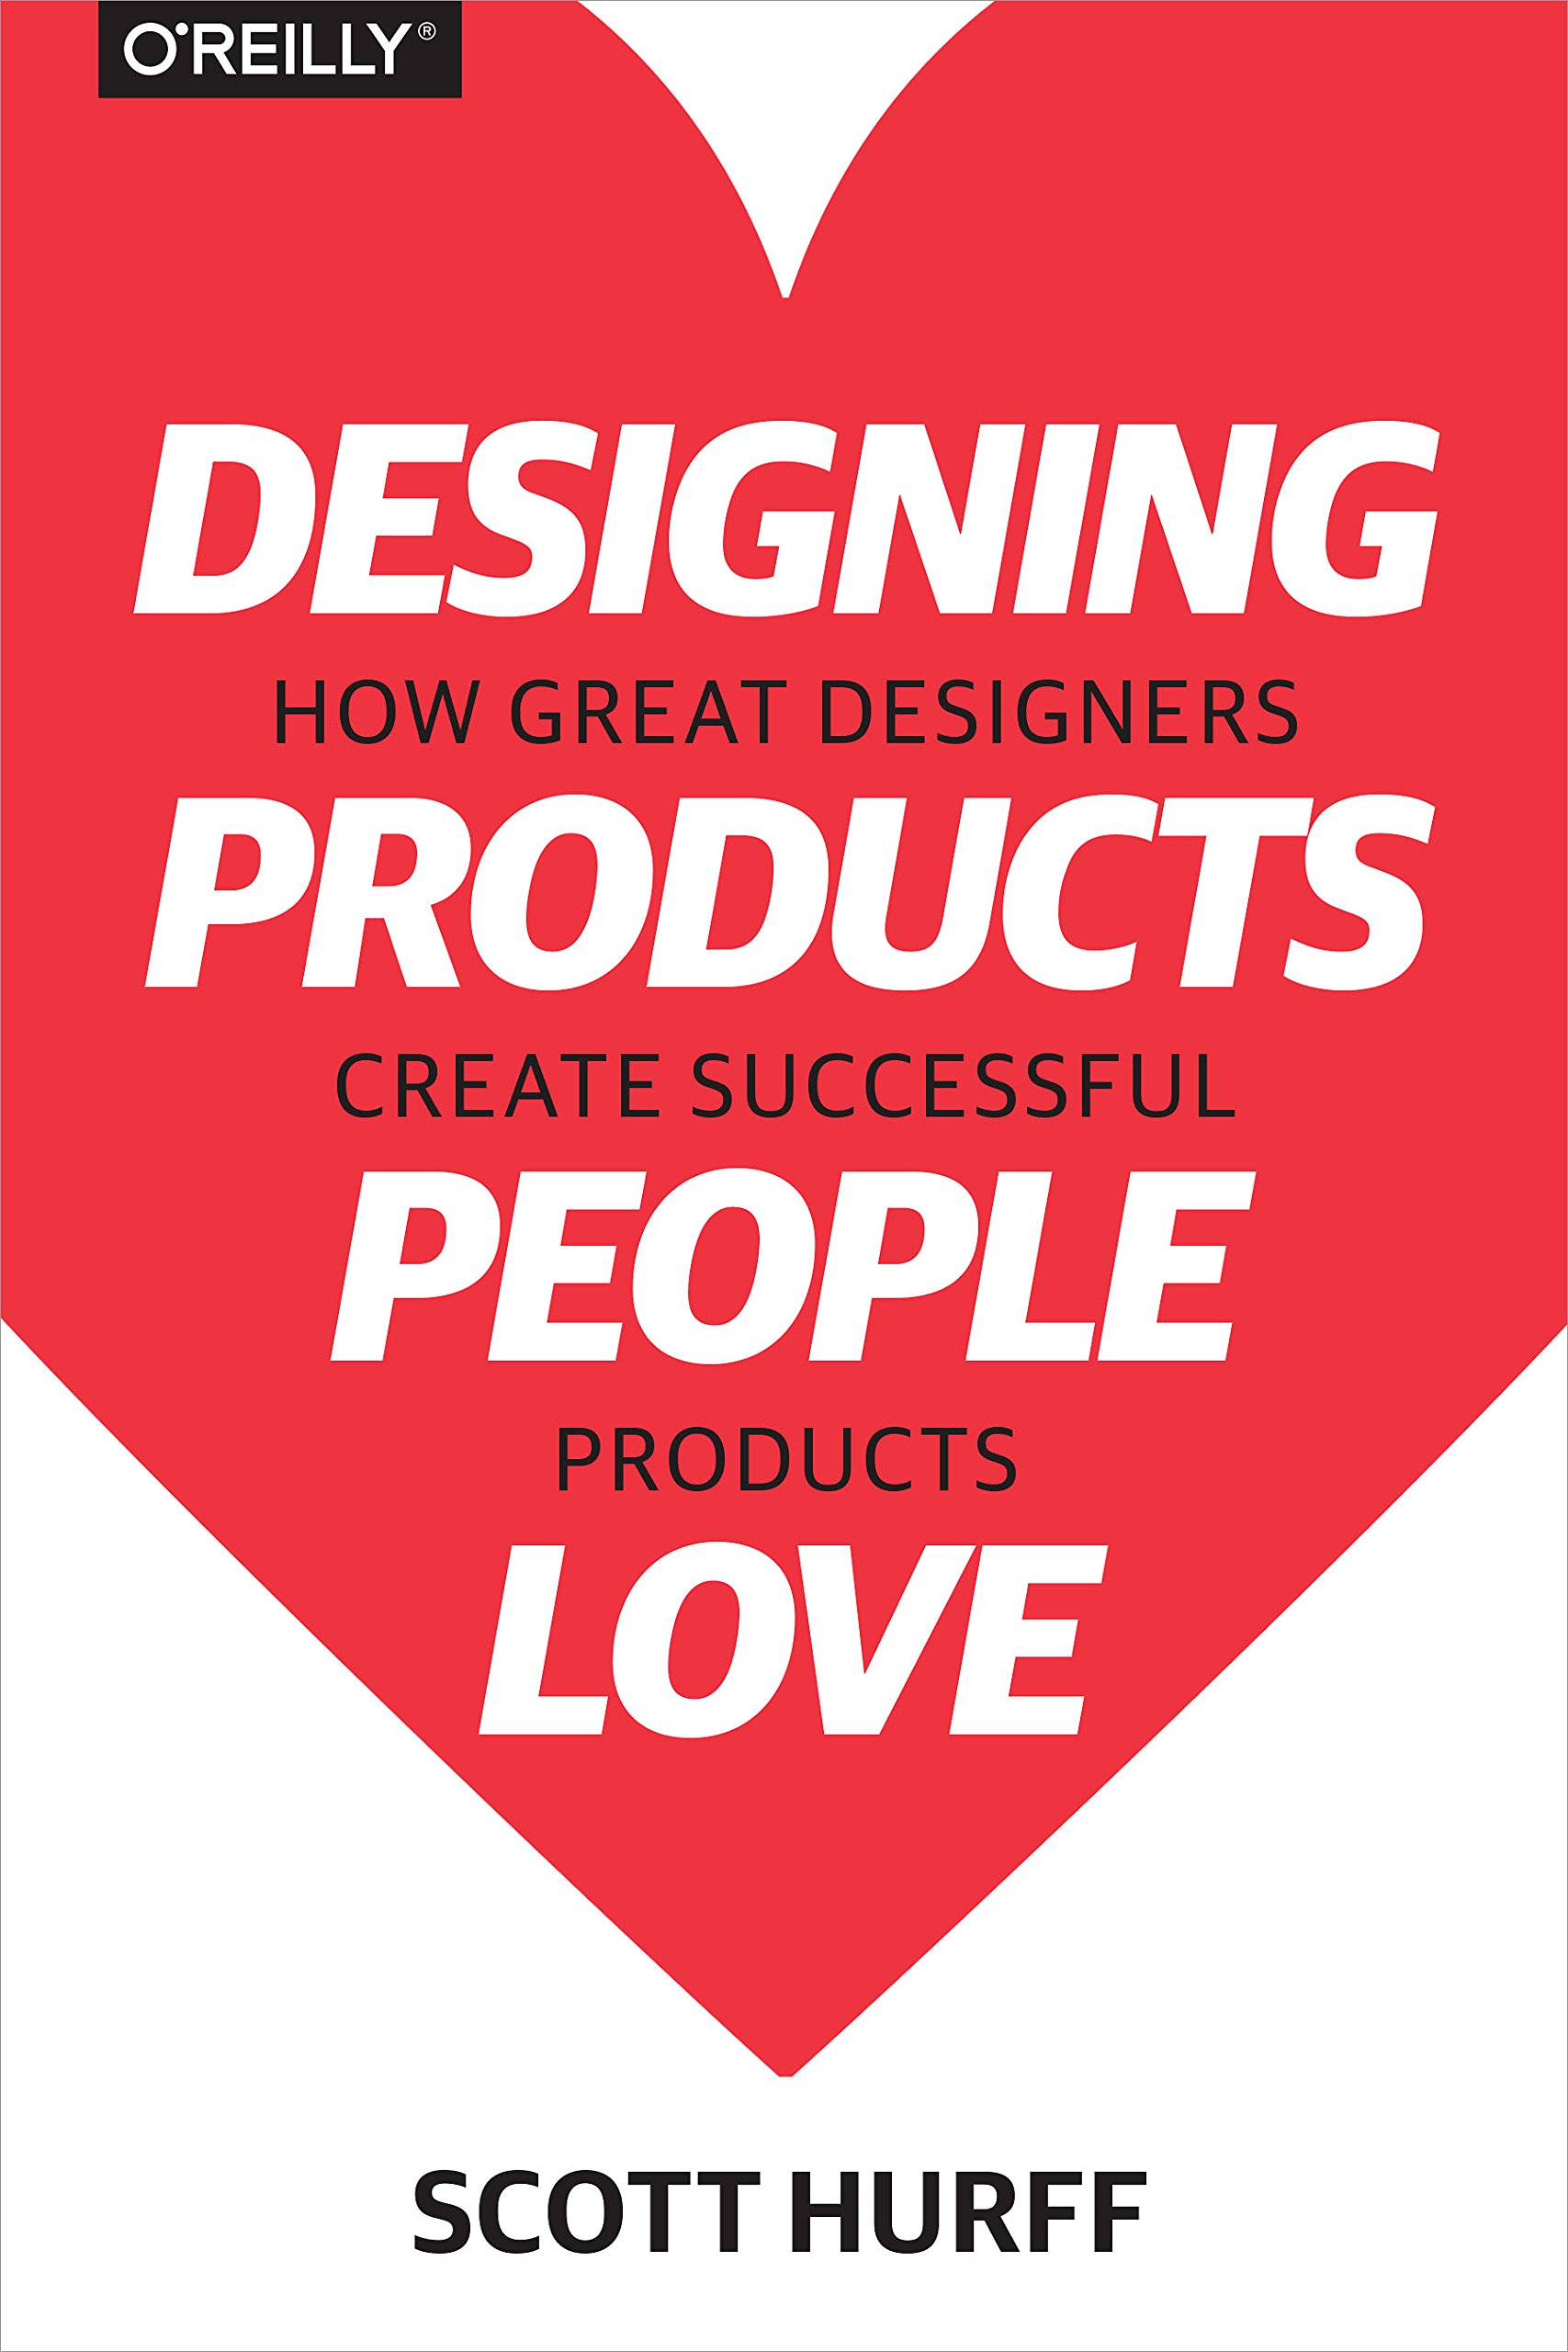 Designing Products People Love How Great Designers Create Successful Products Scott Hurff 9781491923672 Amazon Com Books